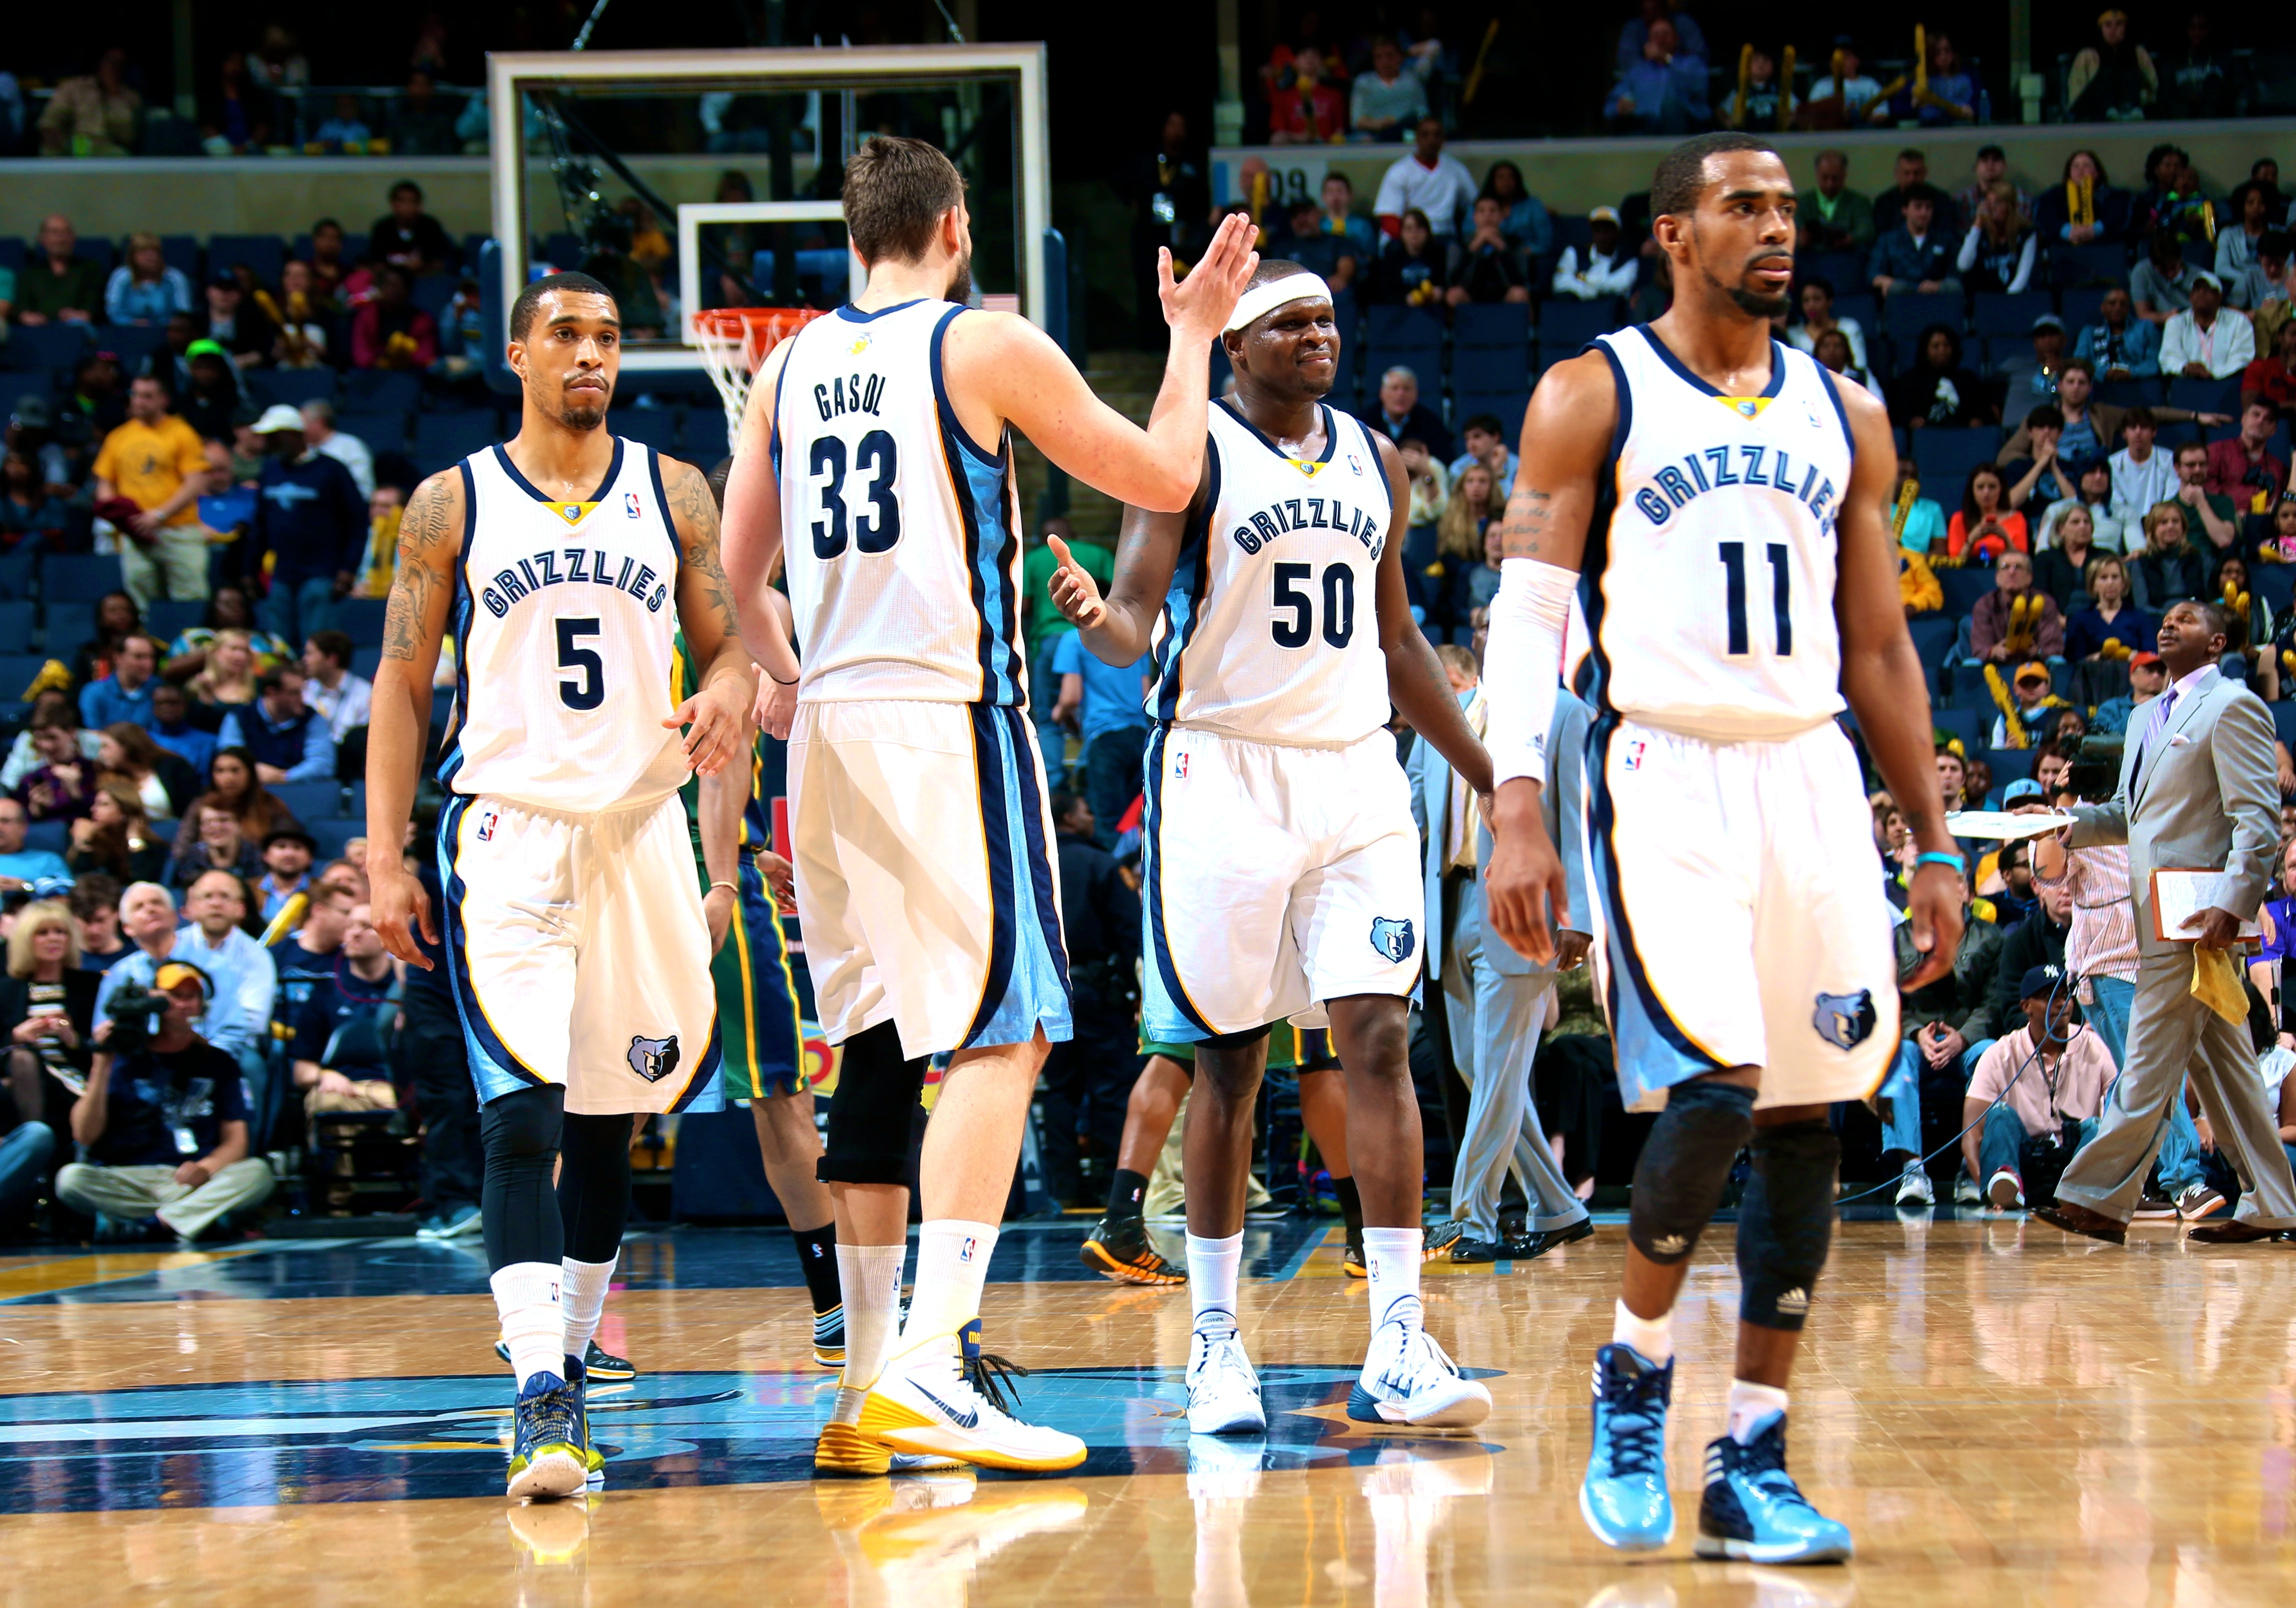 MEMPHIS, TN - MARCH 19: The Memphis Grizzlies celebrate during a game against the Utah Jazz on March 19, 2014 at FedExForum in Memphis, Tennessee. NOTE TO USER: User expressly acknowledges and agrees that, by downloading and or using this photograph, User is consenting to the terms and conditions of the Getty Images License Agreement. Mandatory Copyright Notice: Copyright 2014 NBAE (Photo by Joe Murphy/NBAE via Getty Images)